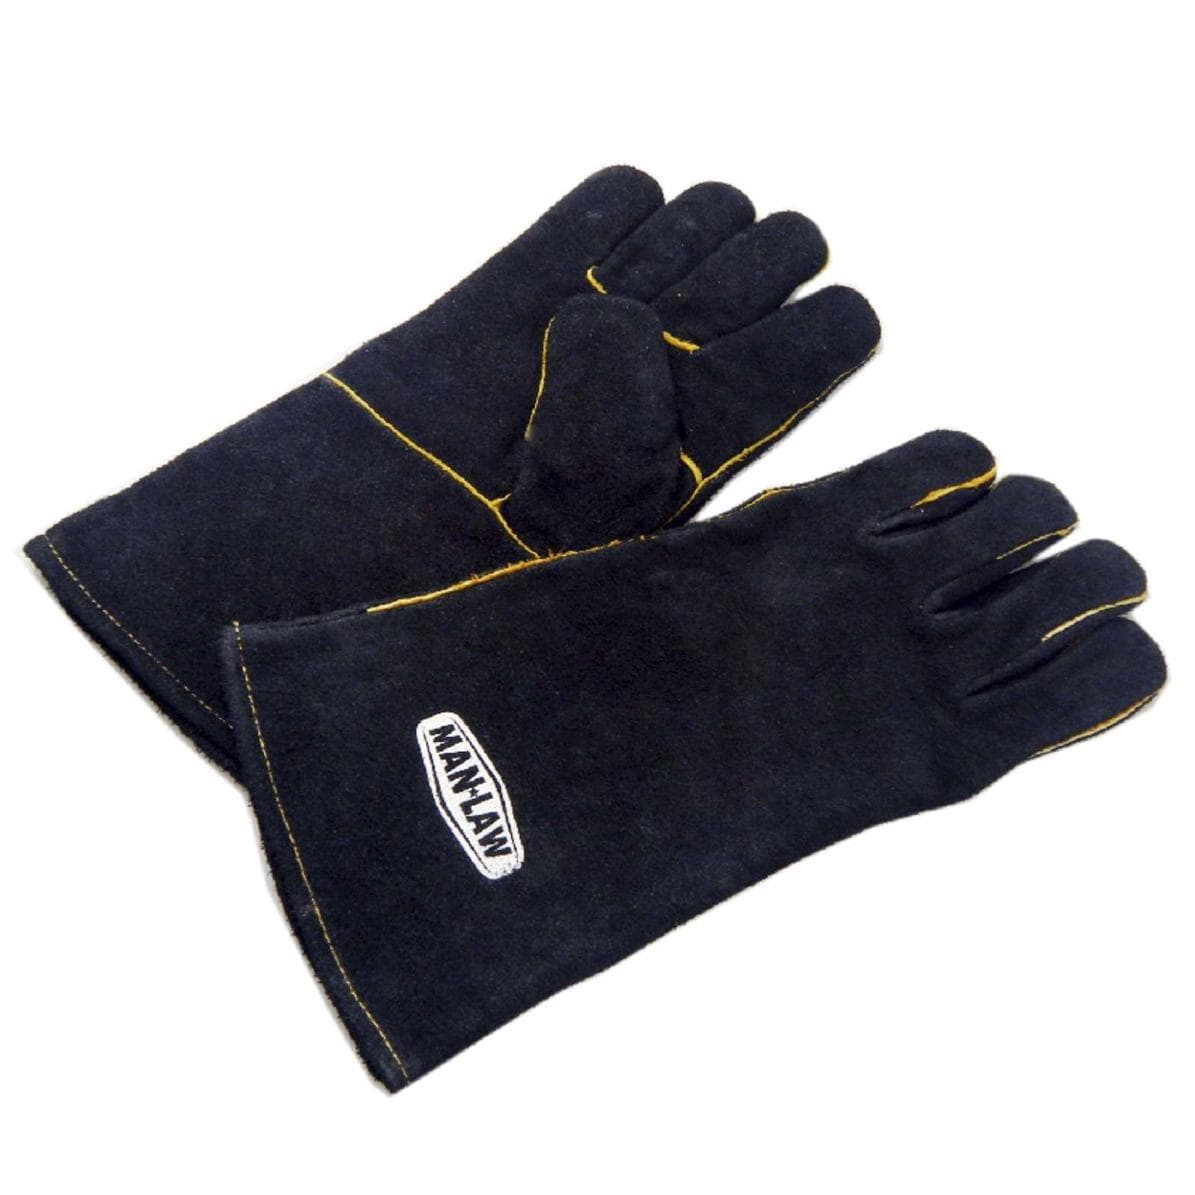 Man-Law Leather Set Of 2 BBQ Grill Gloves